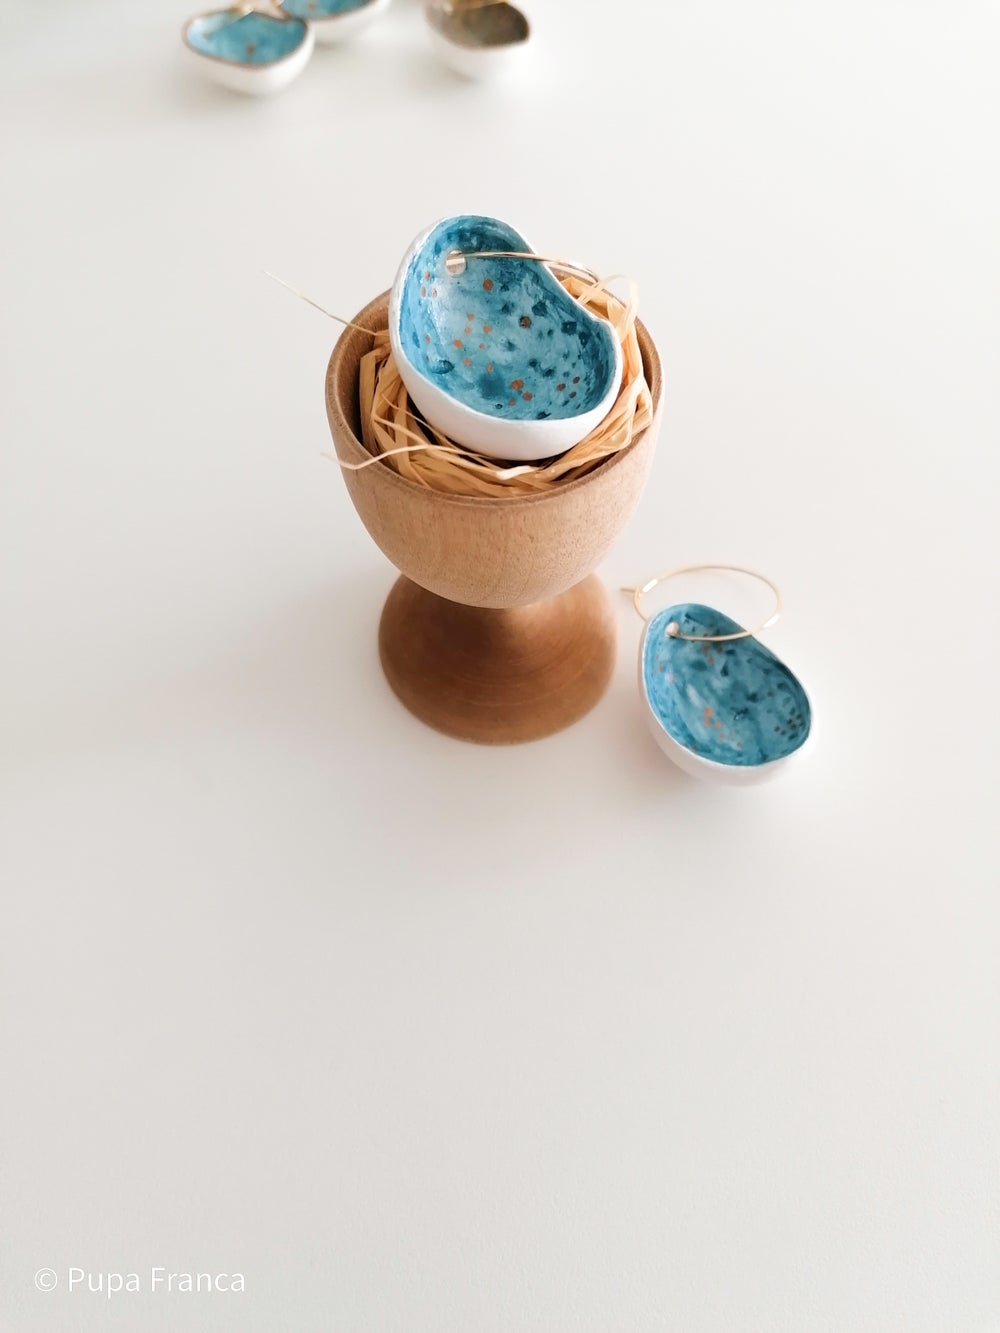 Image of Eggshell Earrings in blue with golden dots